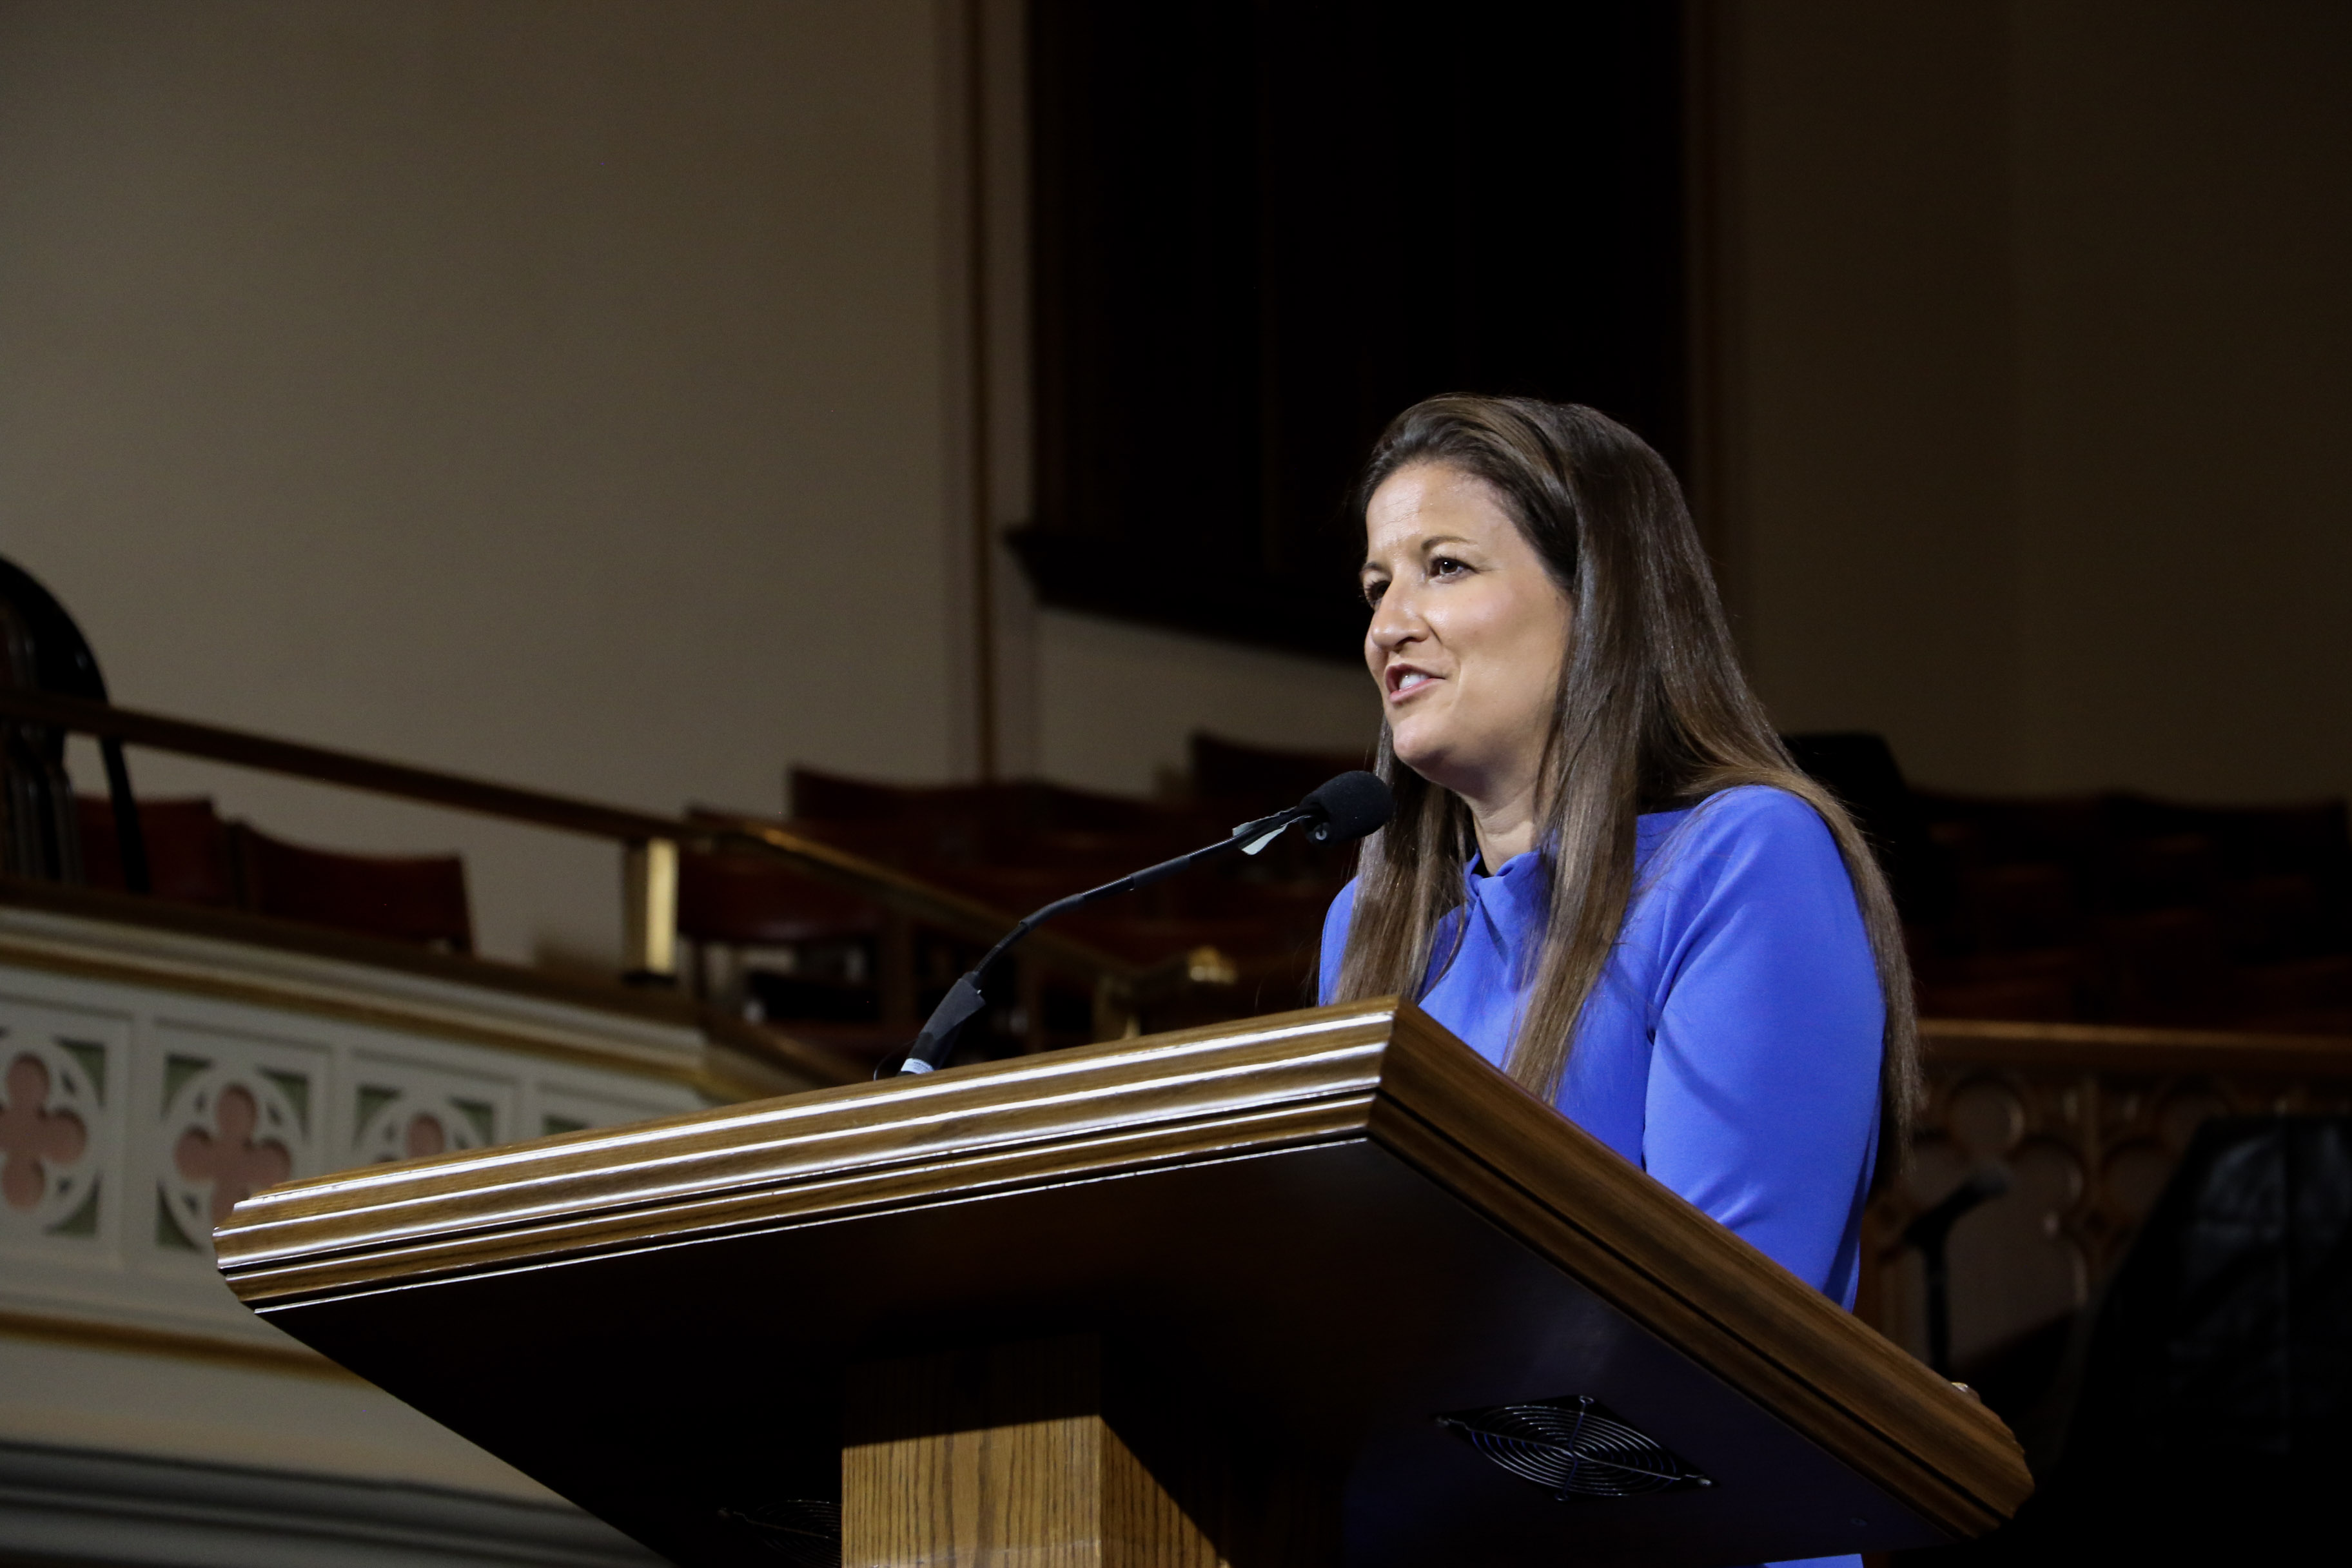 Sister Liz Darger, BYU associate athletic director and member of the Young Women general board, speaks at a LDS Business College Devotional in the Assembly Hall at Temple Square on Tuesday, June 18, 2019.